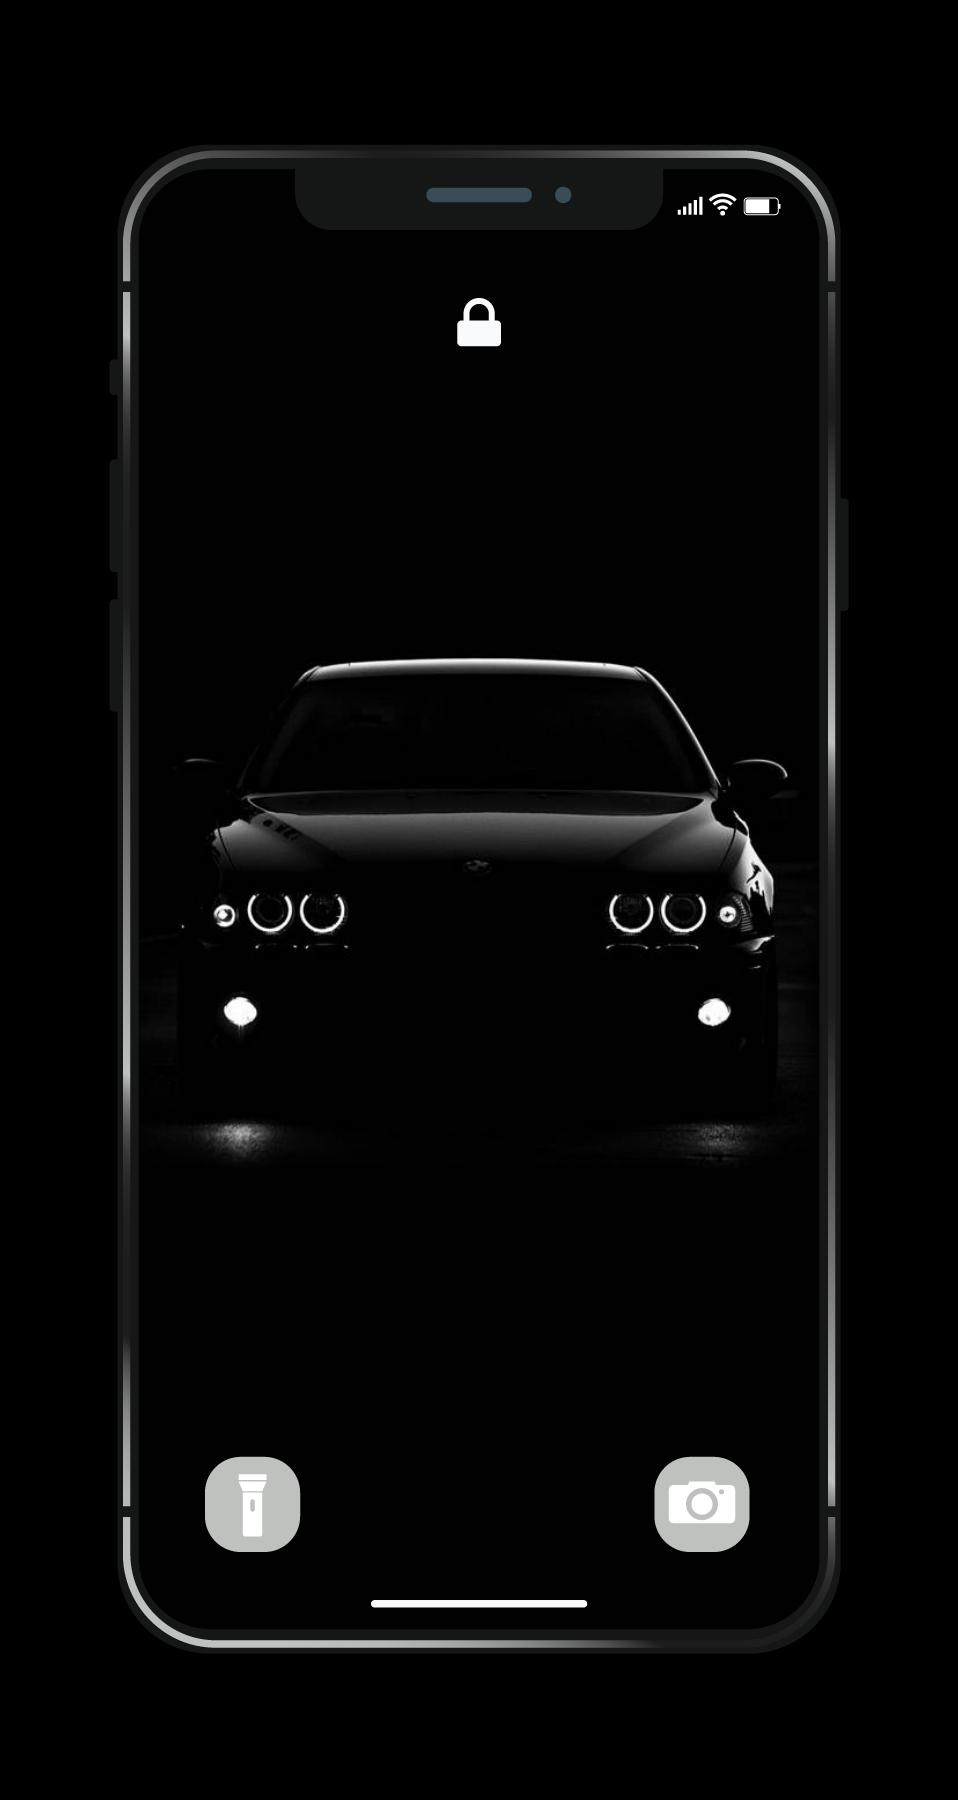 Wallpapers For Bmw 4k Hd Bmw Cars Wallpaper For Android Apk Download